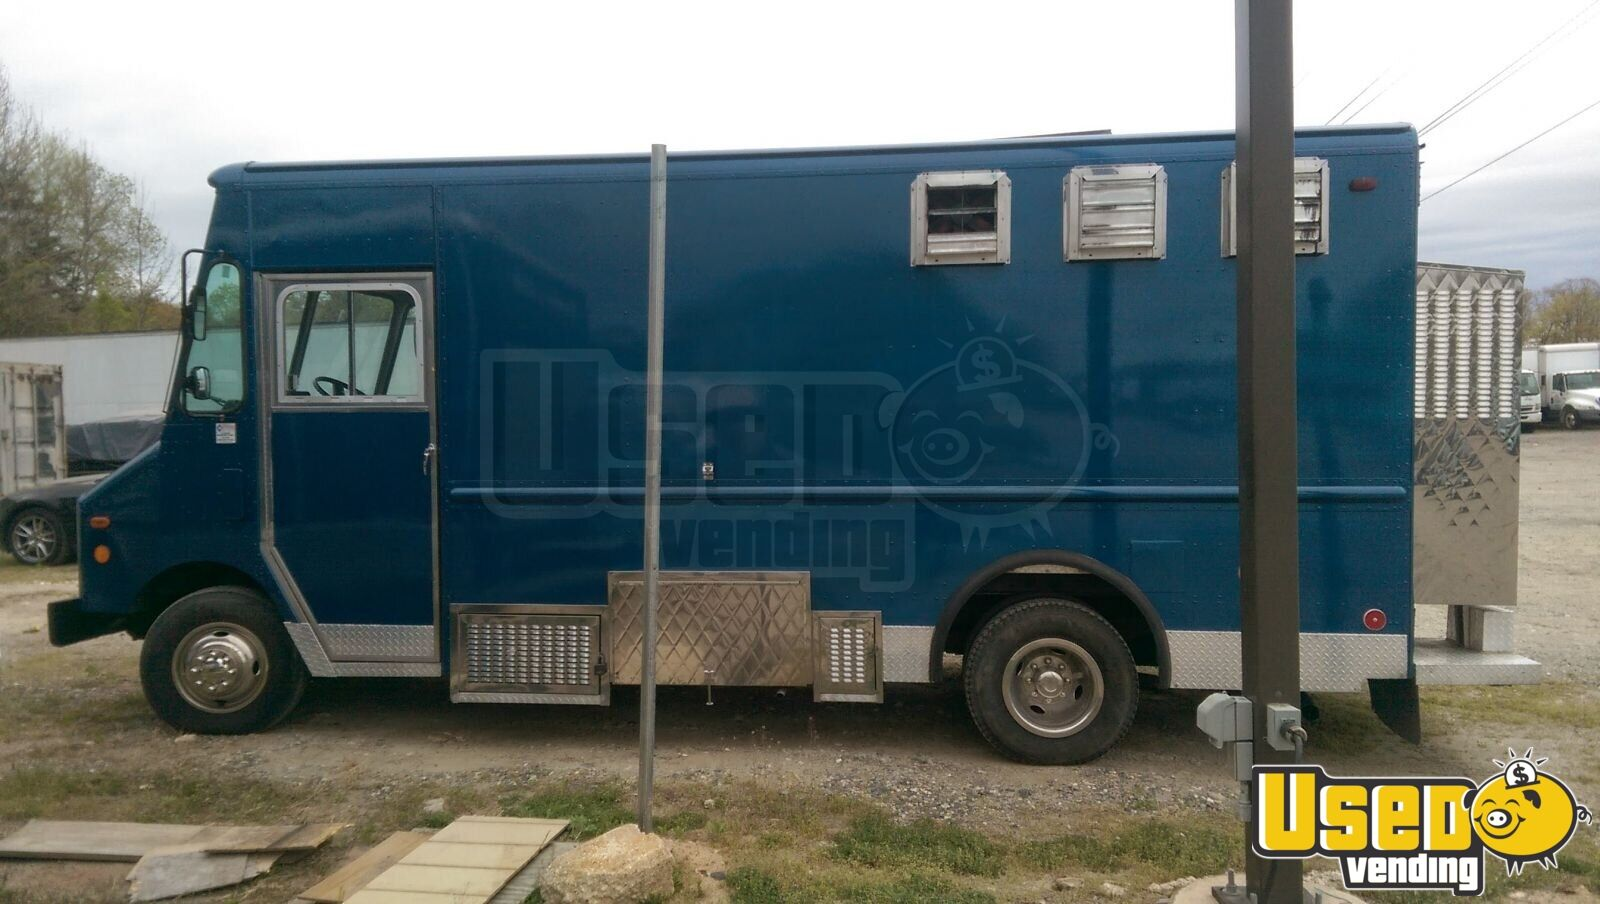 1994 Chevy P32 Van All-purpose Food Truck Cabinets Maryland Gas Engine for Sale - 3